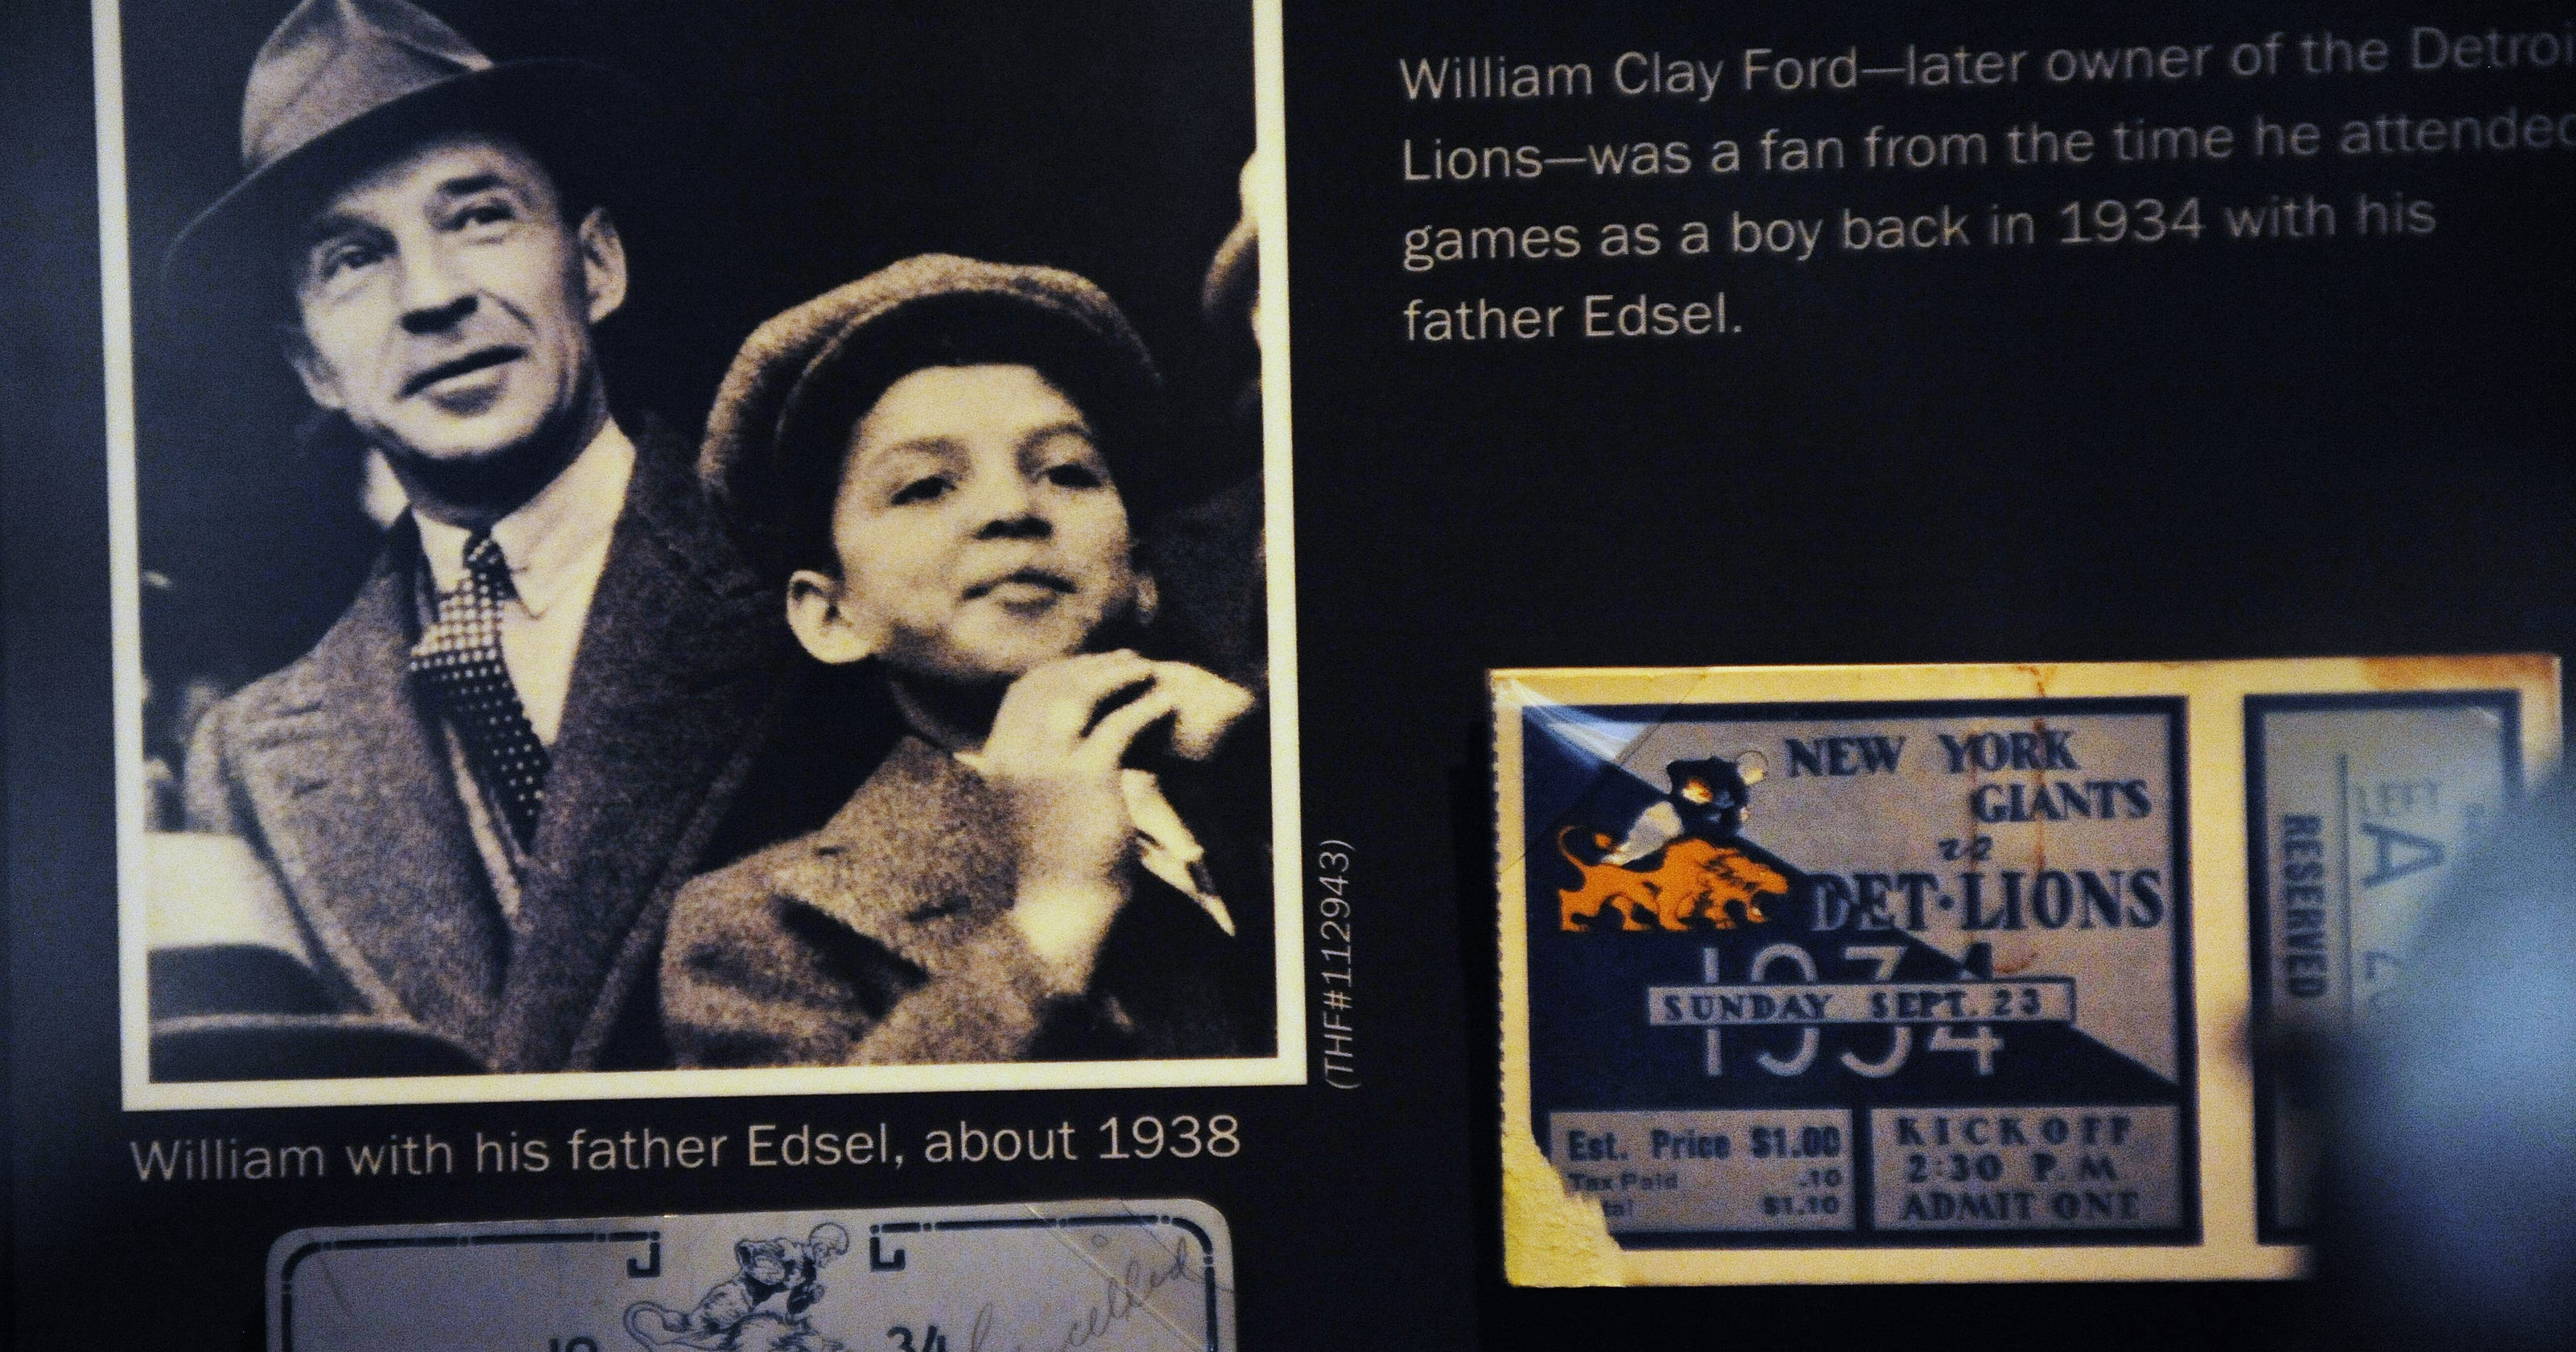 Image result for william clay ford buys detroit lions photo